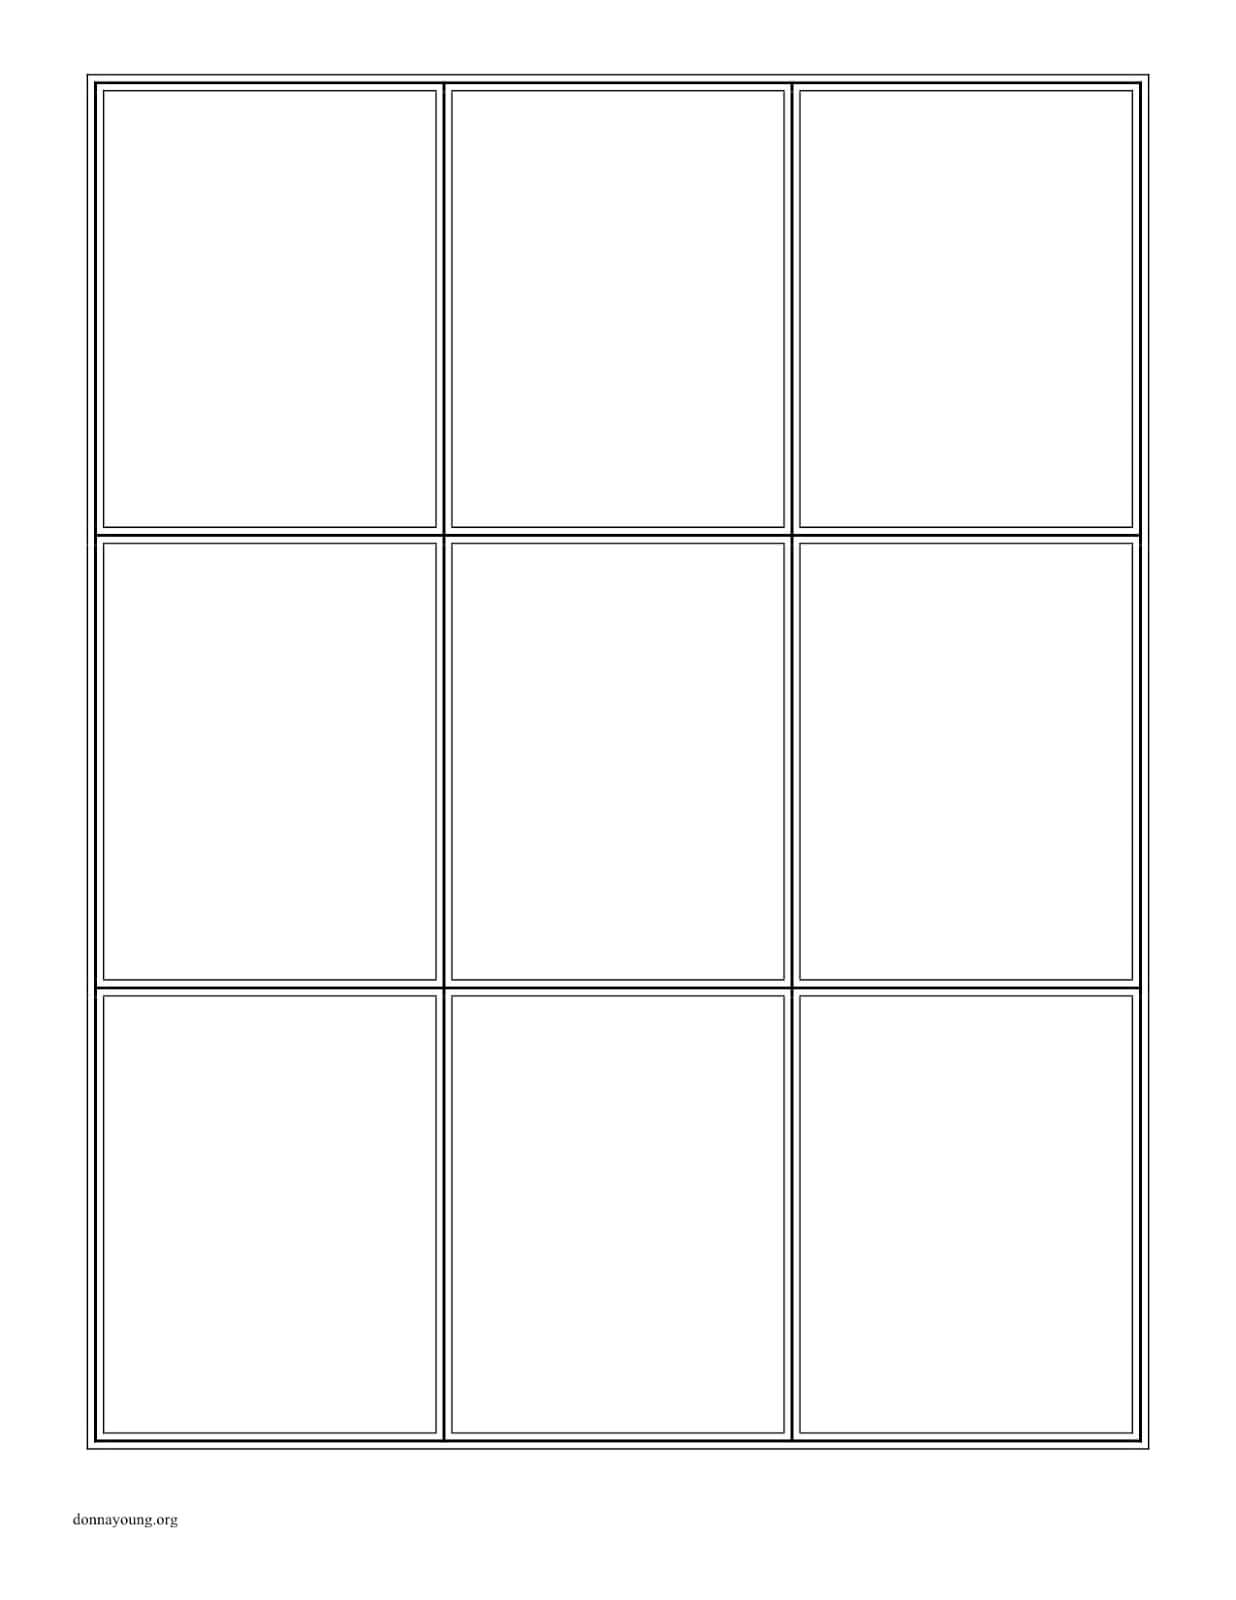 Trading Card Template Maker Creator Free Blank Pdf Download For Baseball Card Size Template